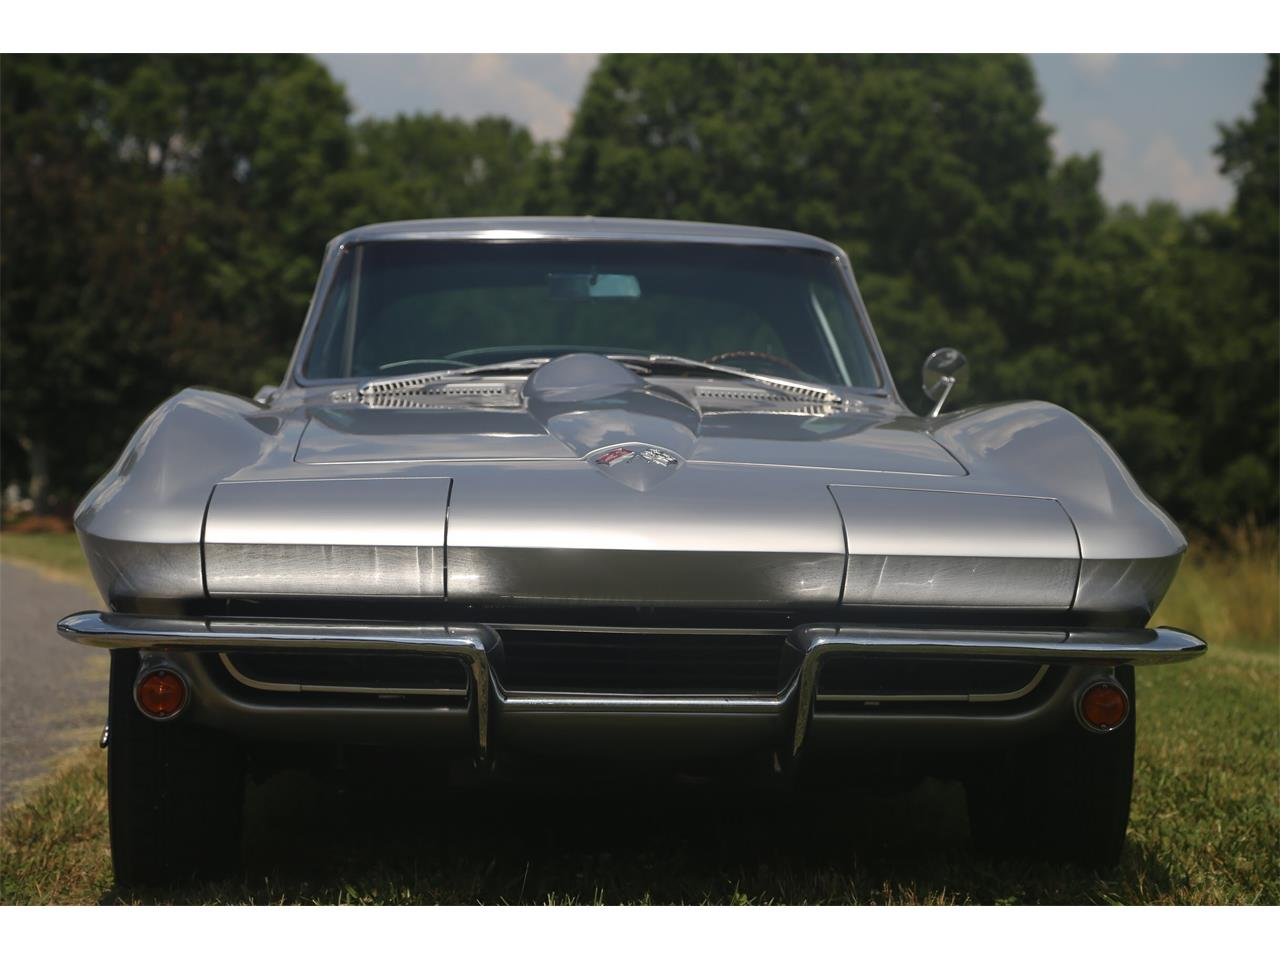 Large Picture of Classic '65 Chevrolet Corvette located in Suwanee Georgia Auction Vehicle Offered by Bullseye Auctions - QCTR